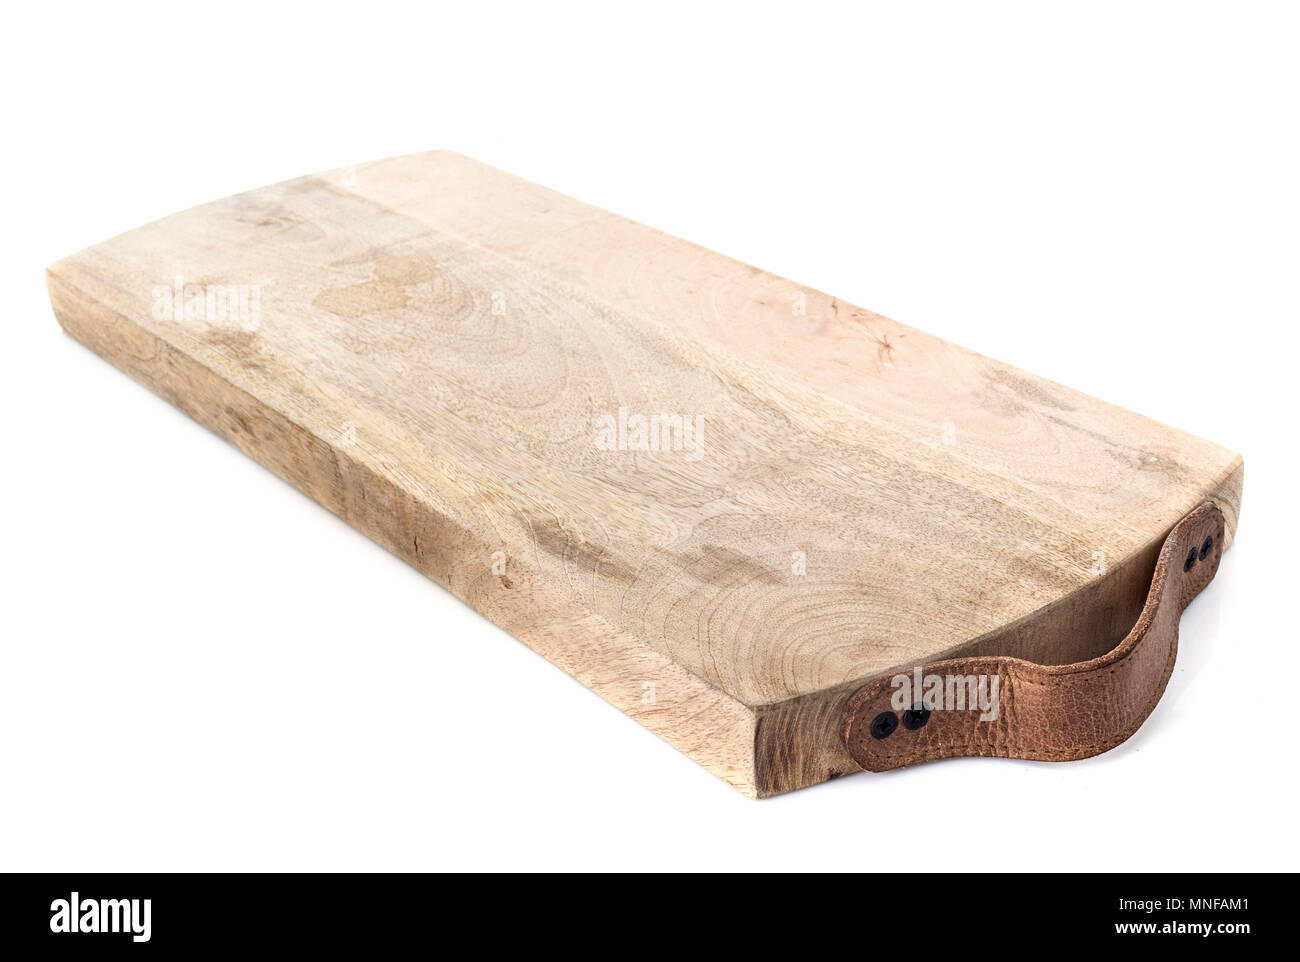 Chopping board in front of white background Photo Stock